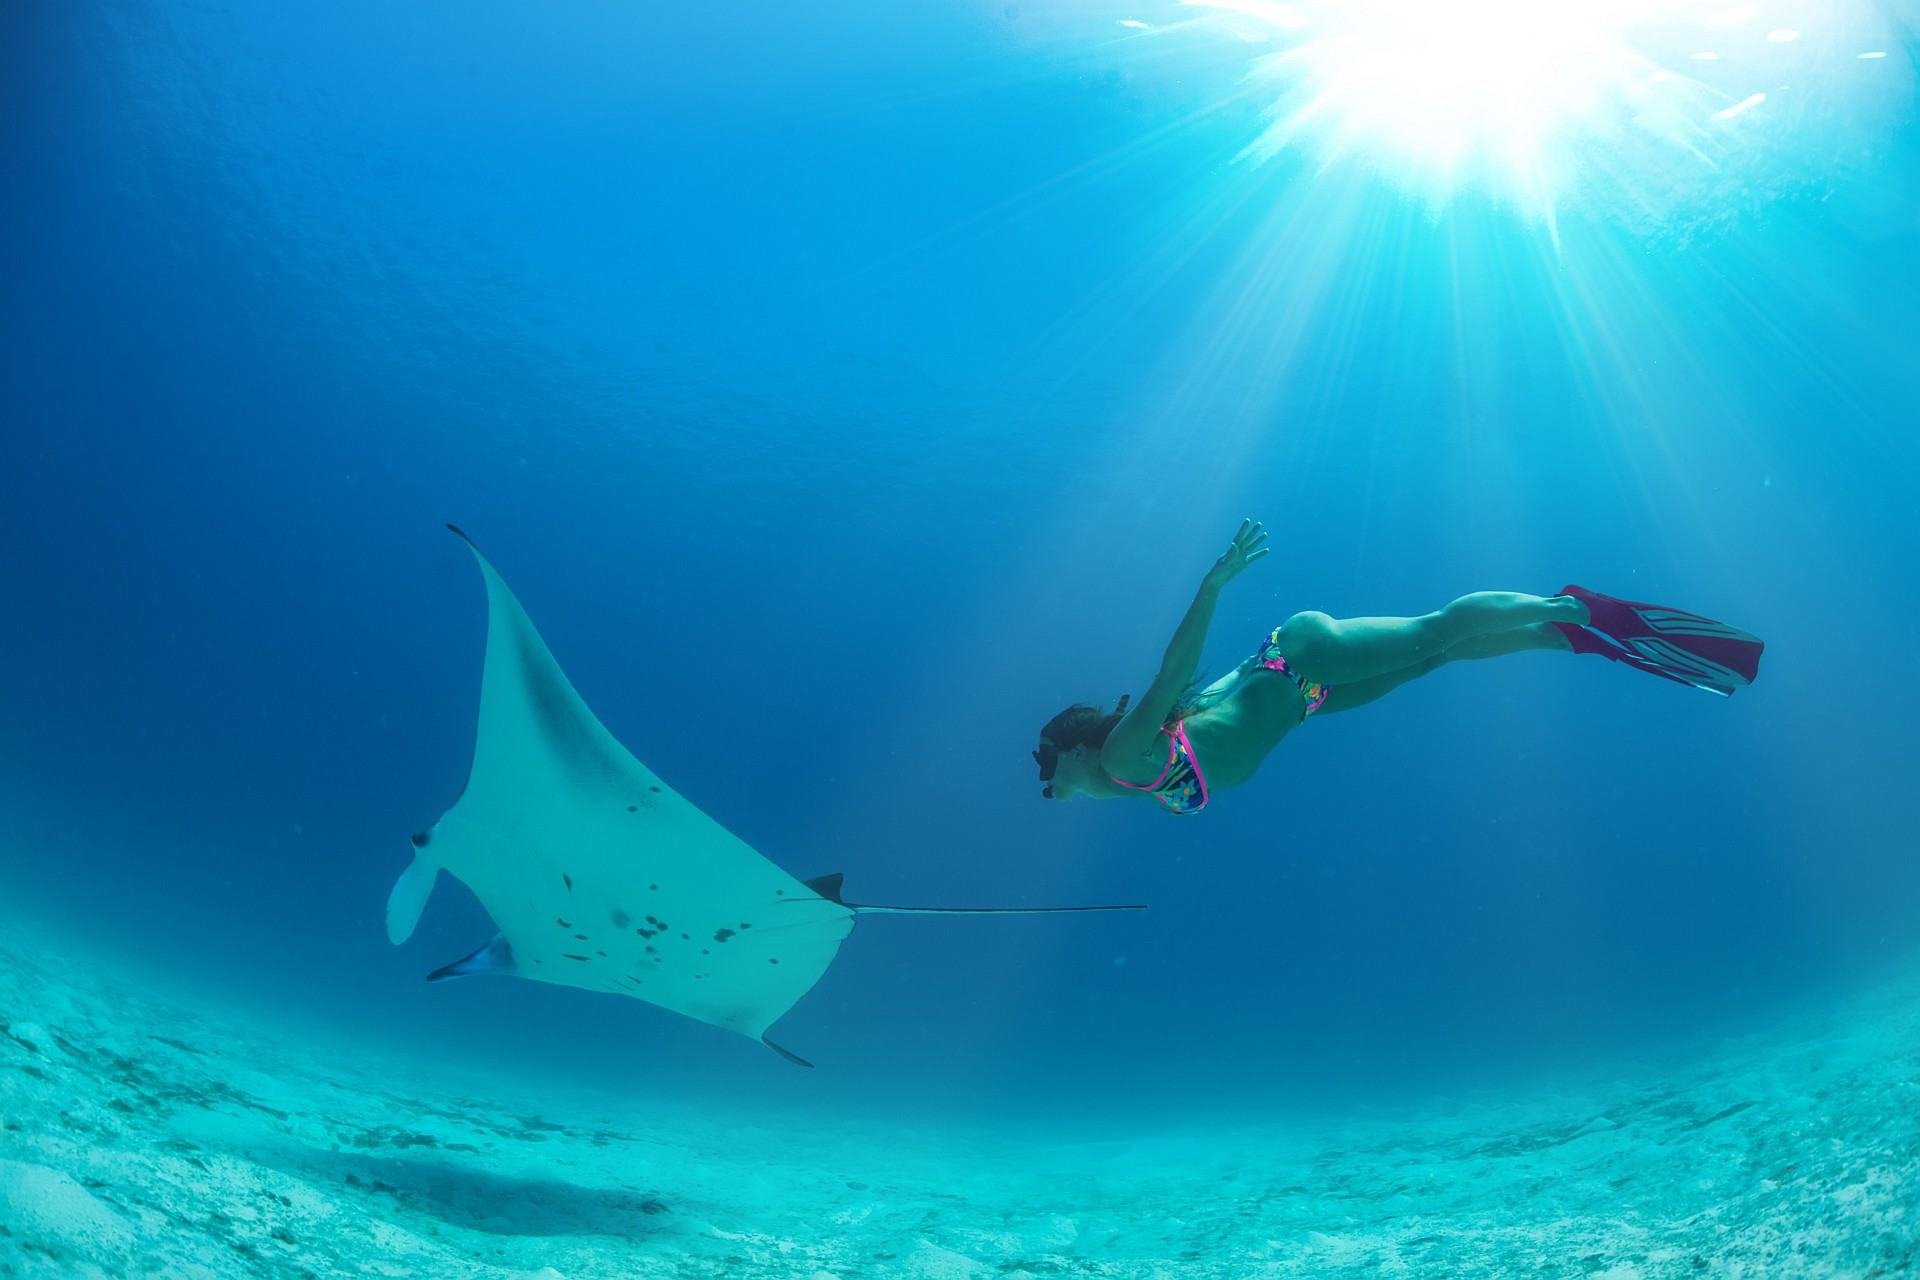 Woman up close freediving with rays, sun spectacularly shining through surface of water